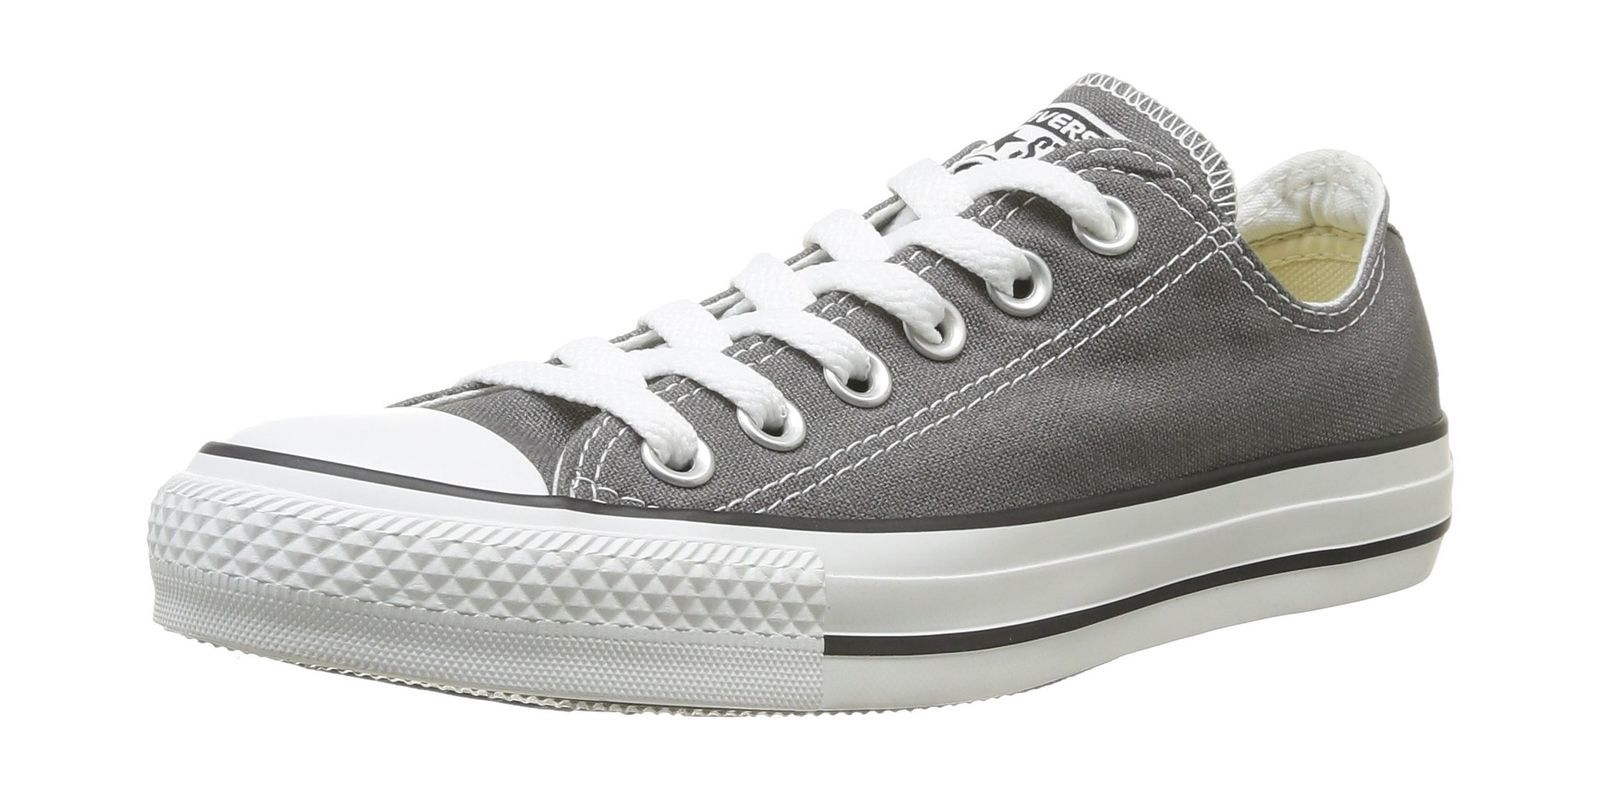 63788f877af Converse Unisex Adults Chuck Taylor All Star Ox Low-Top Sneakers 17 UK